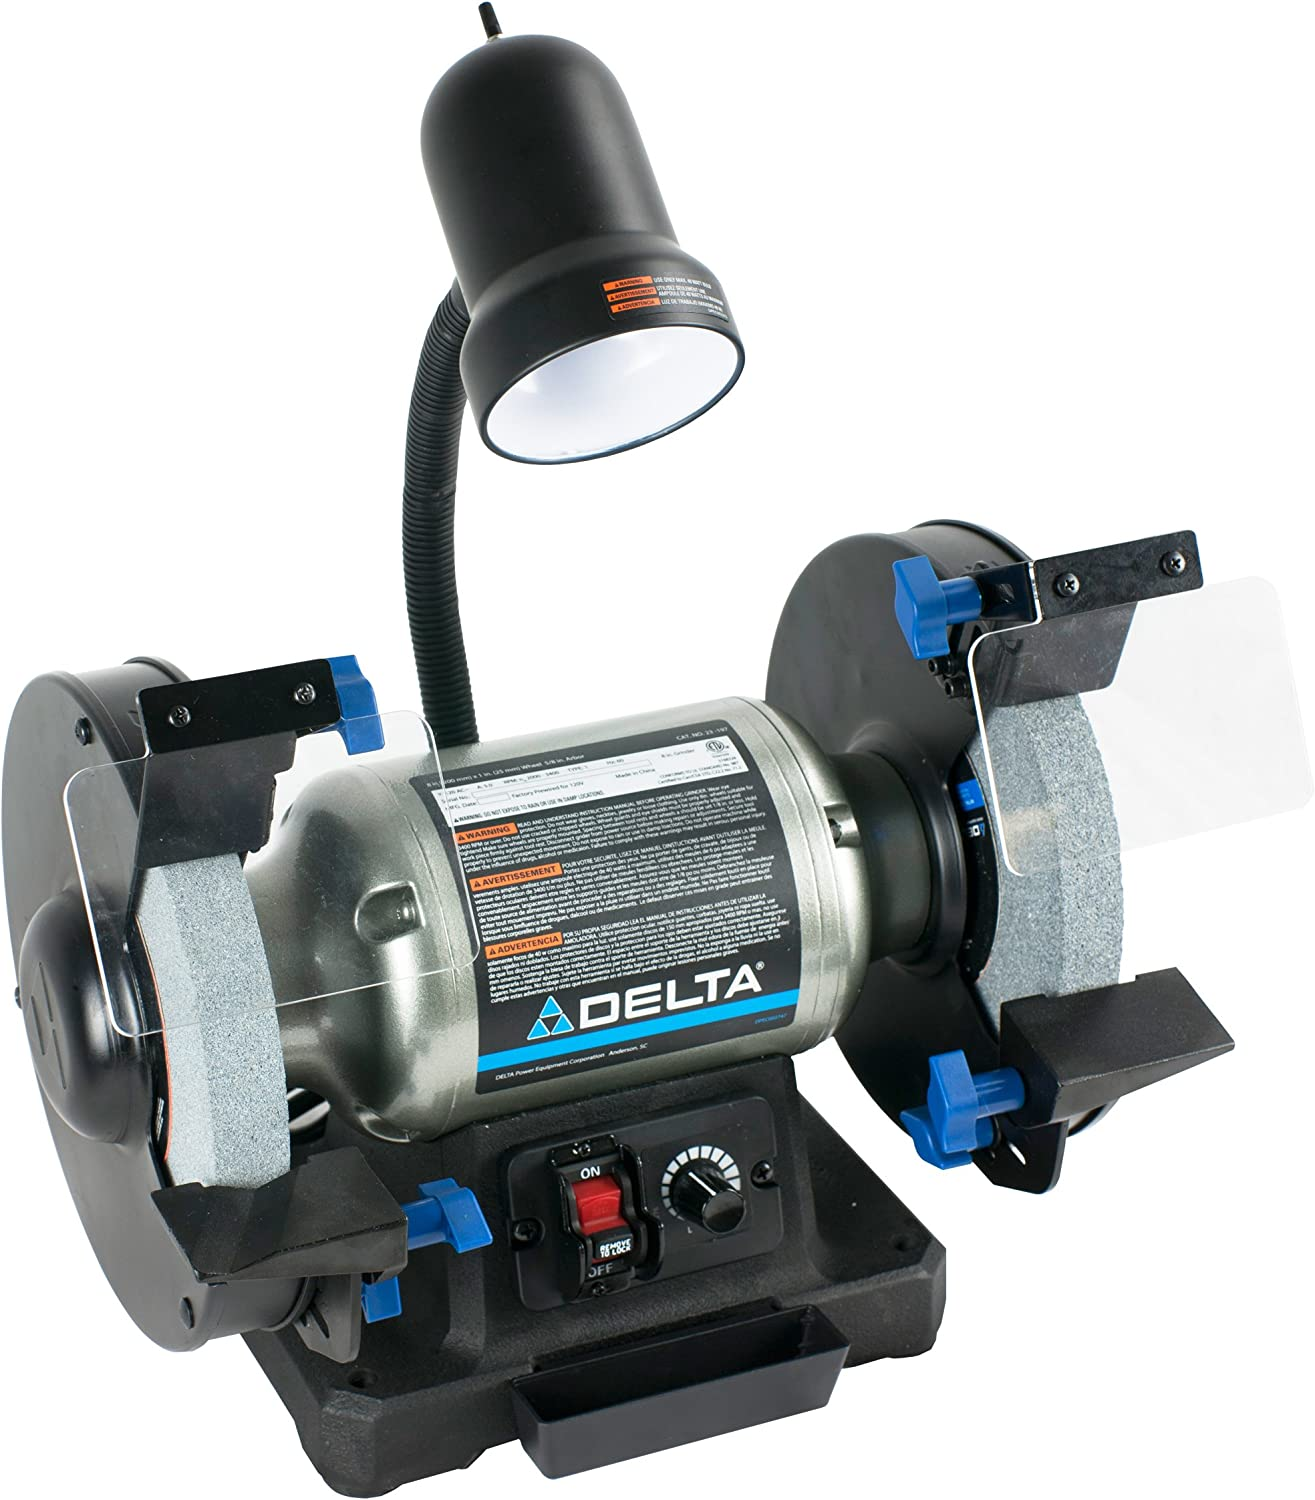 2. Delta Power Tools 23-197 8-Inch Variable Speed Bench Grinder